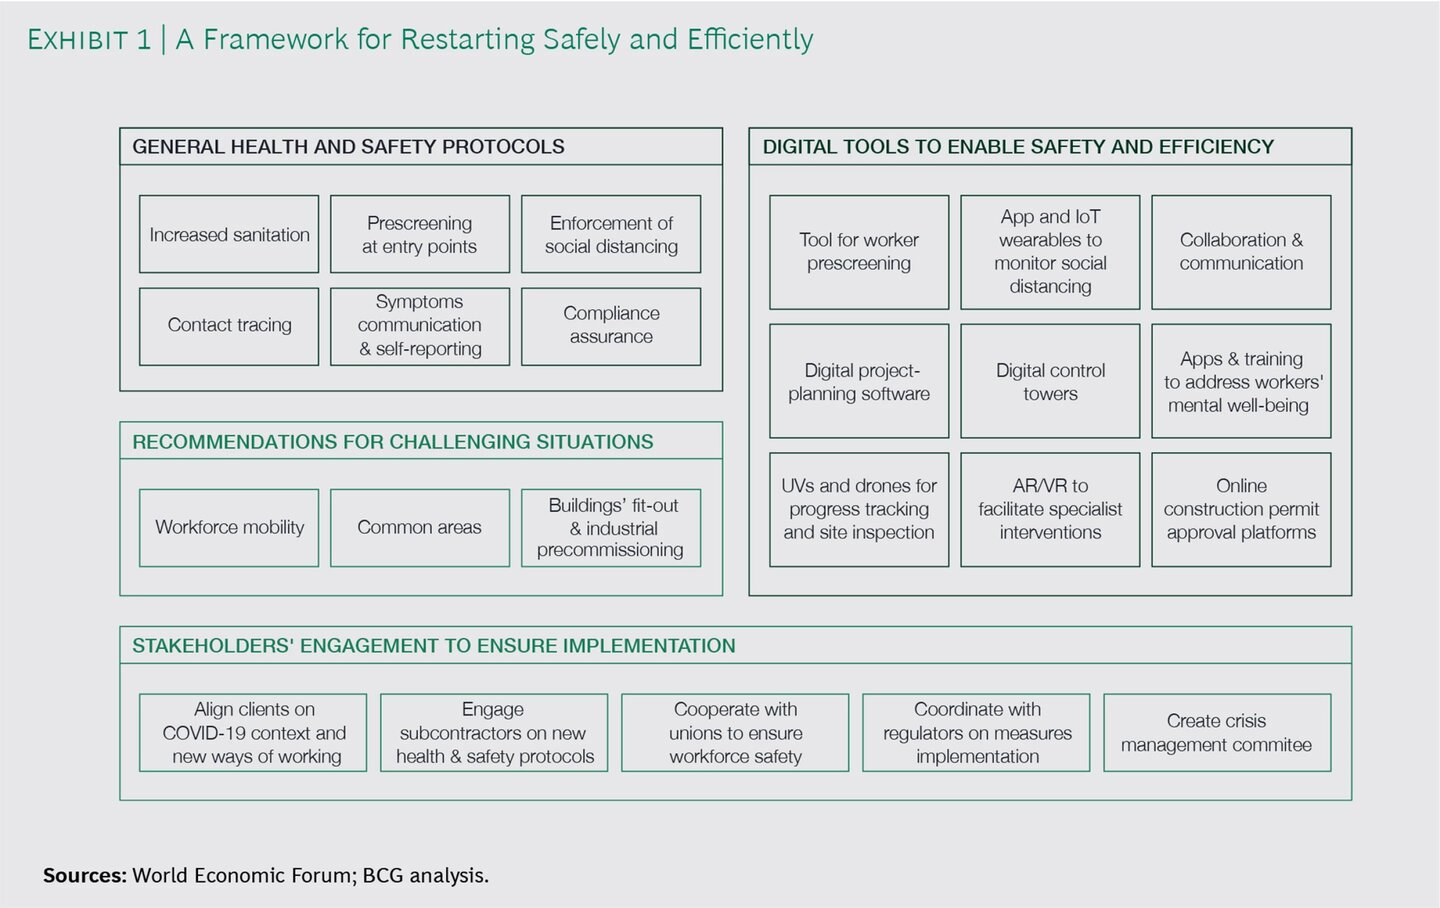 framework for restarting operations safely and efficiently